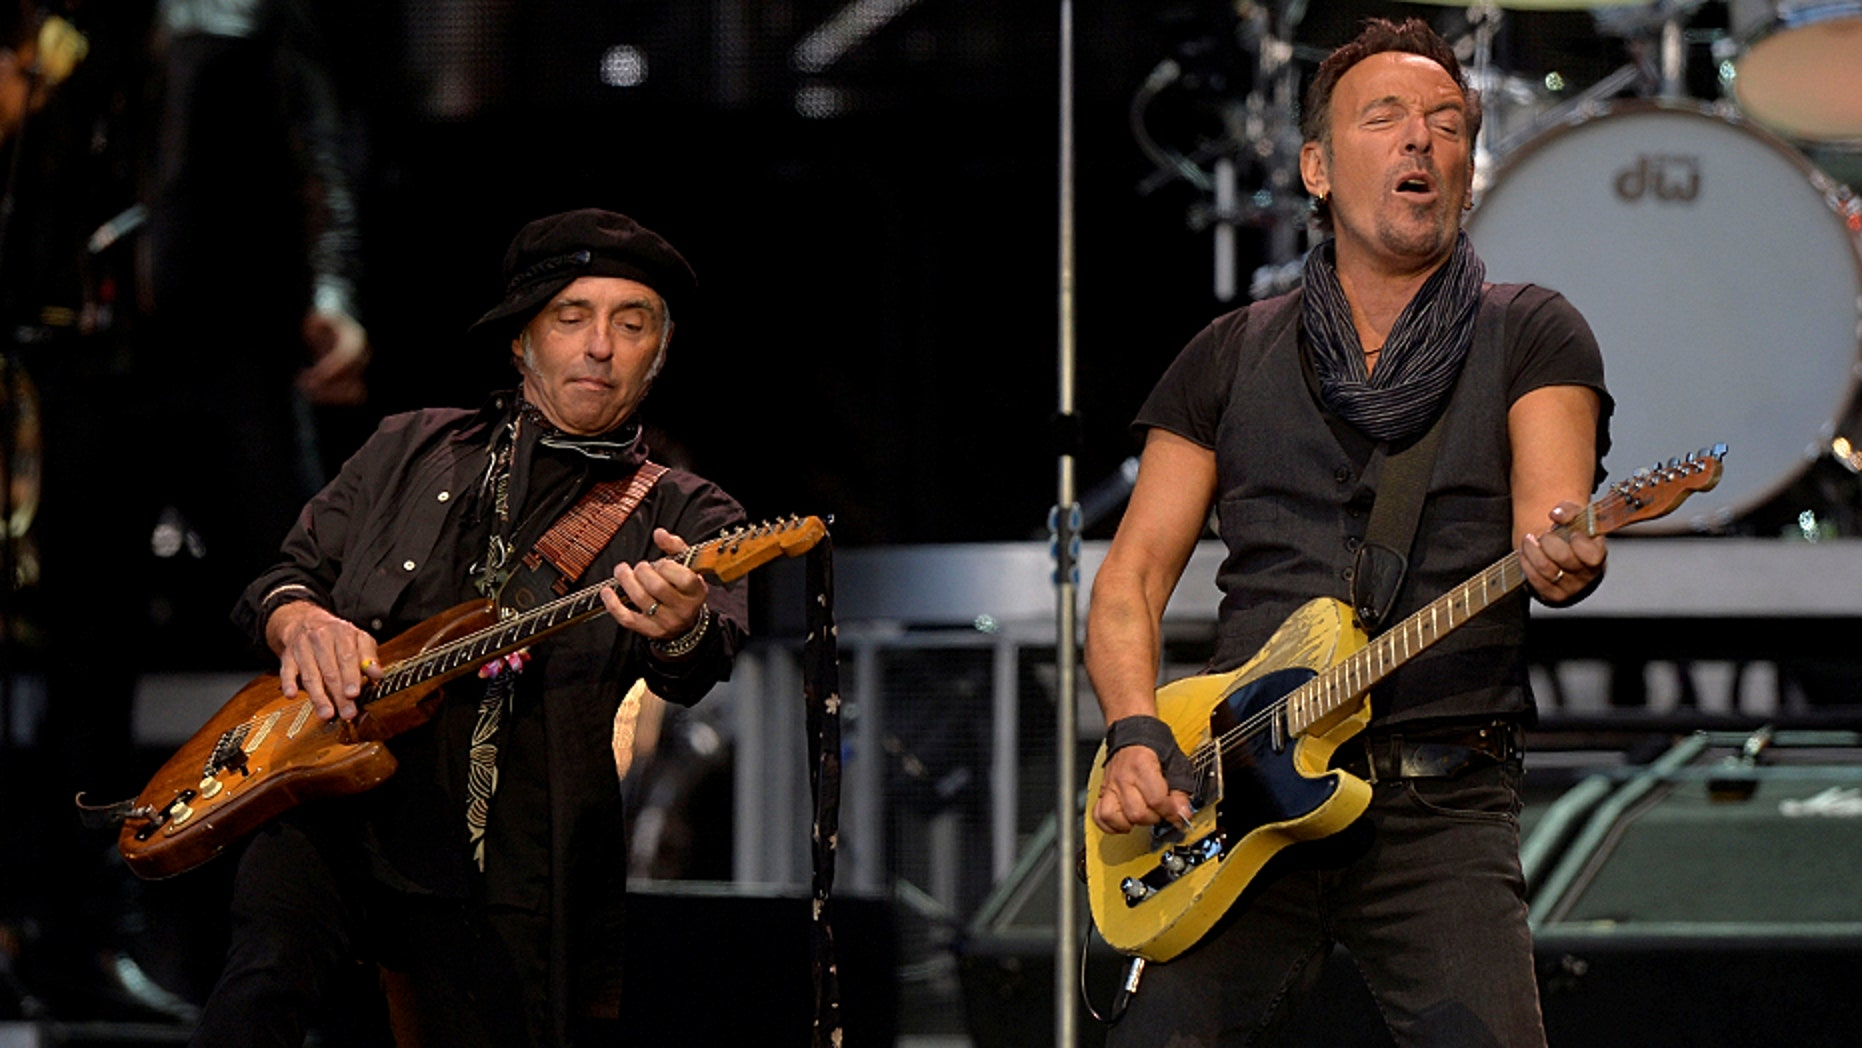 Nils Lofgren, left, guitarist of Bruce Springsteen's E Street Band, had four guitars and other equipment stolen before his Dallas show.